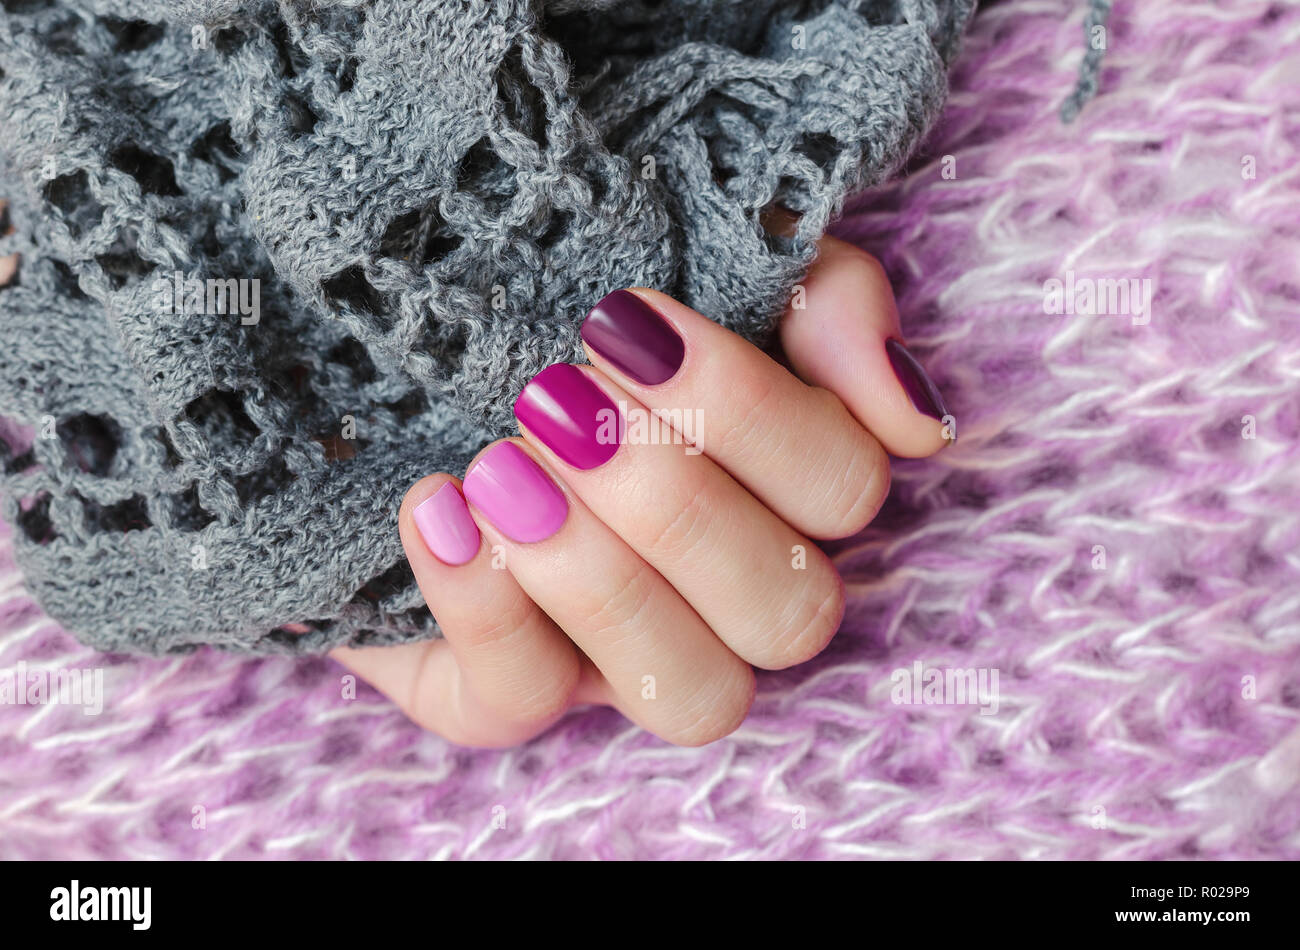 Pink Nail Design Beautiful Female Hand With Different Shades Of Pink Manicure Stock Photo Alamy